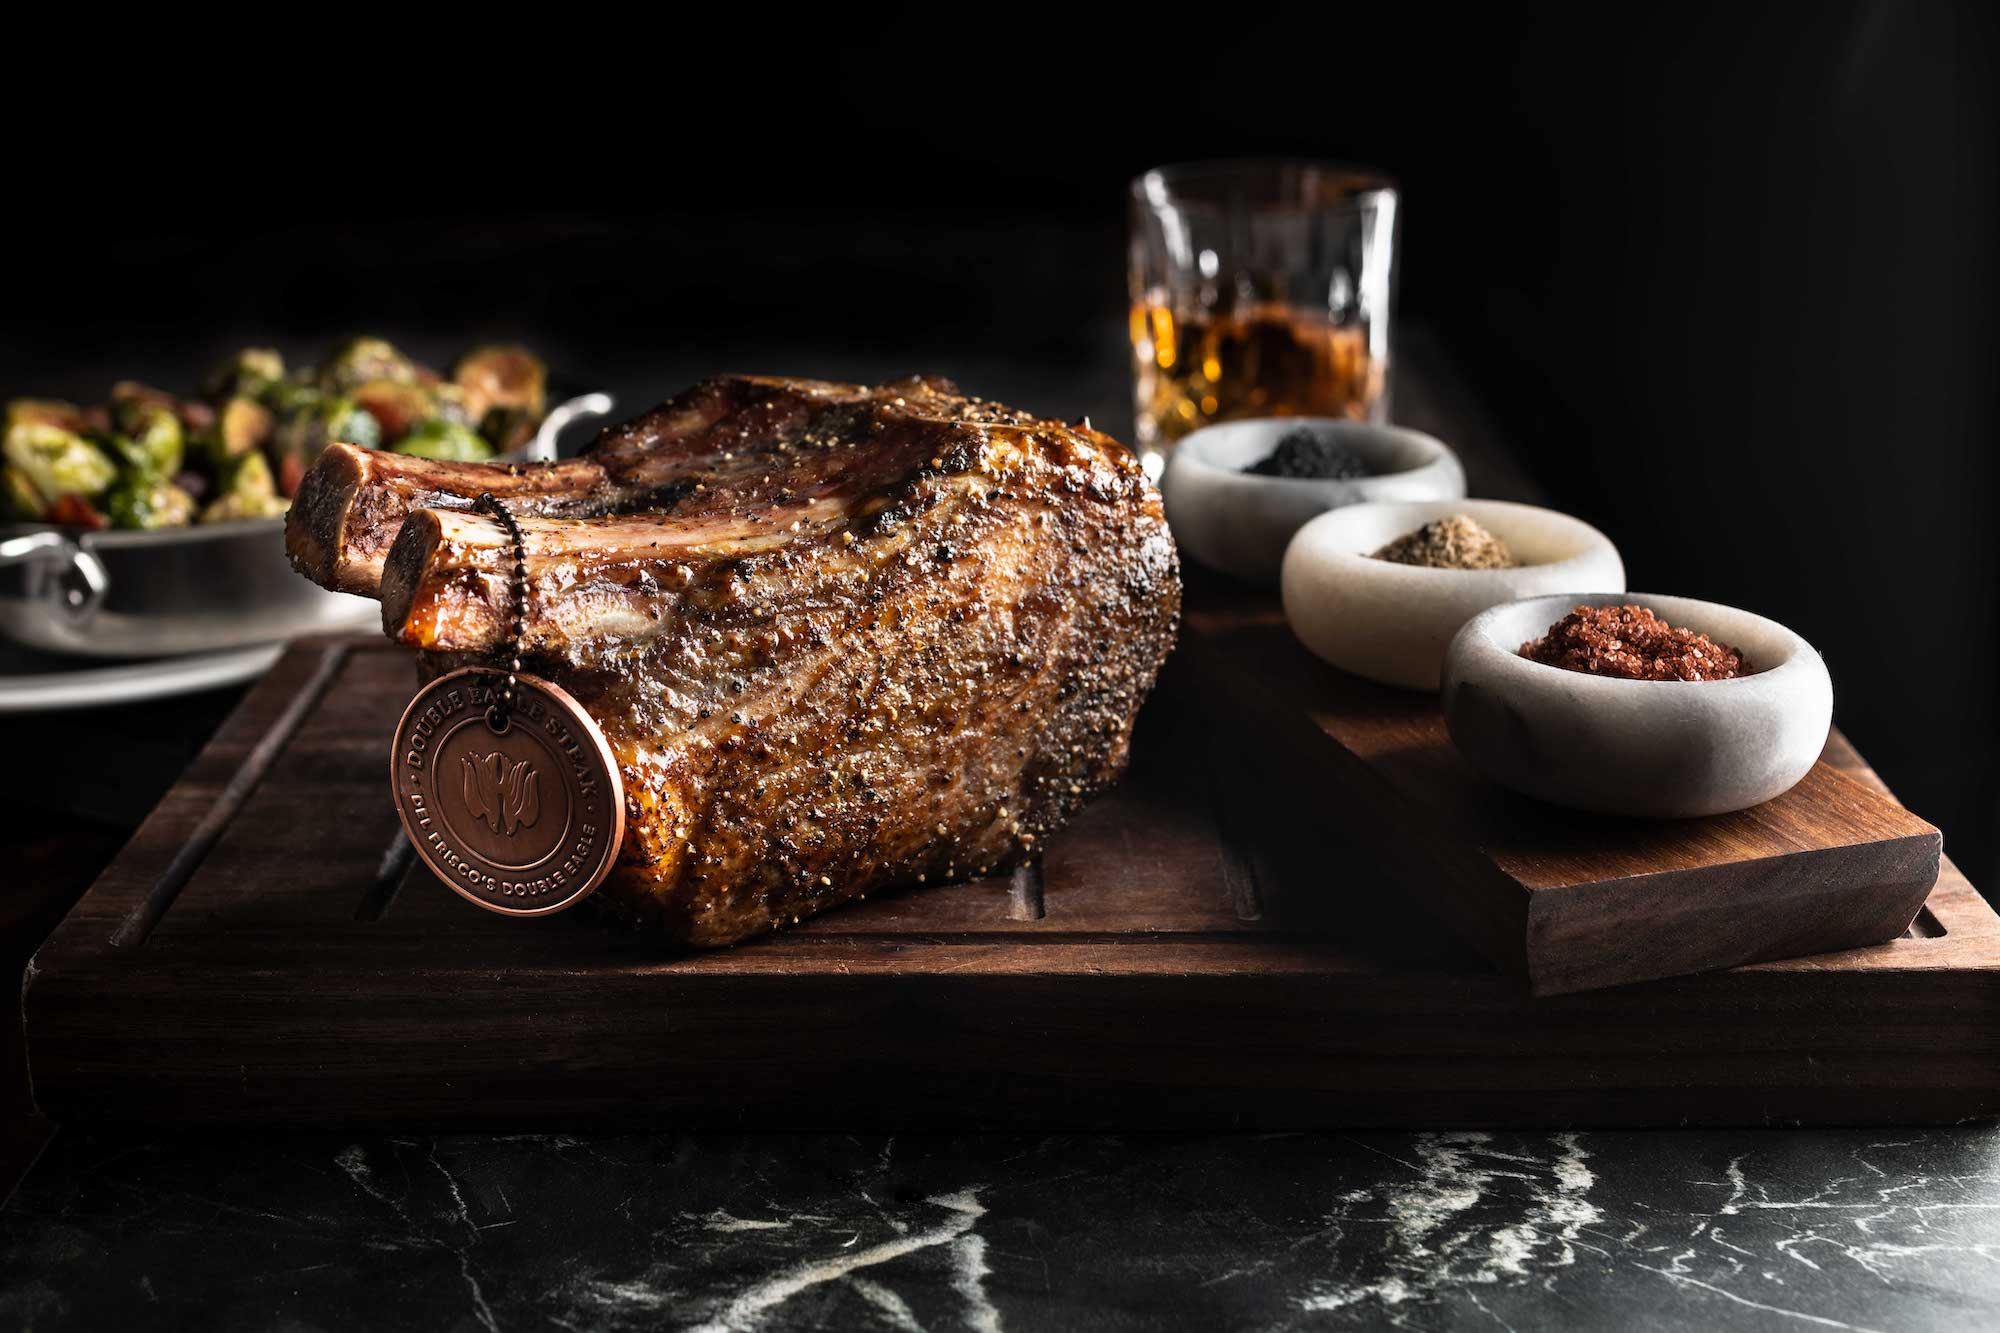 Century City's New 15,000 Square Foot Steakhouse Is Comically Opulent